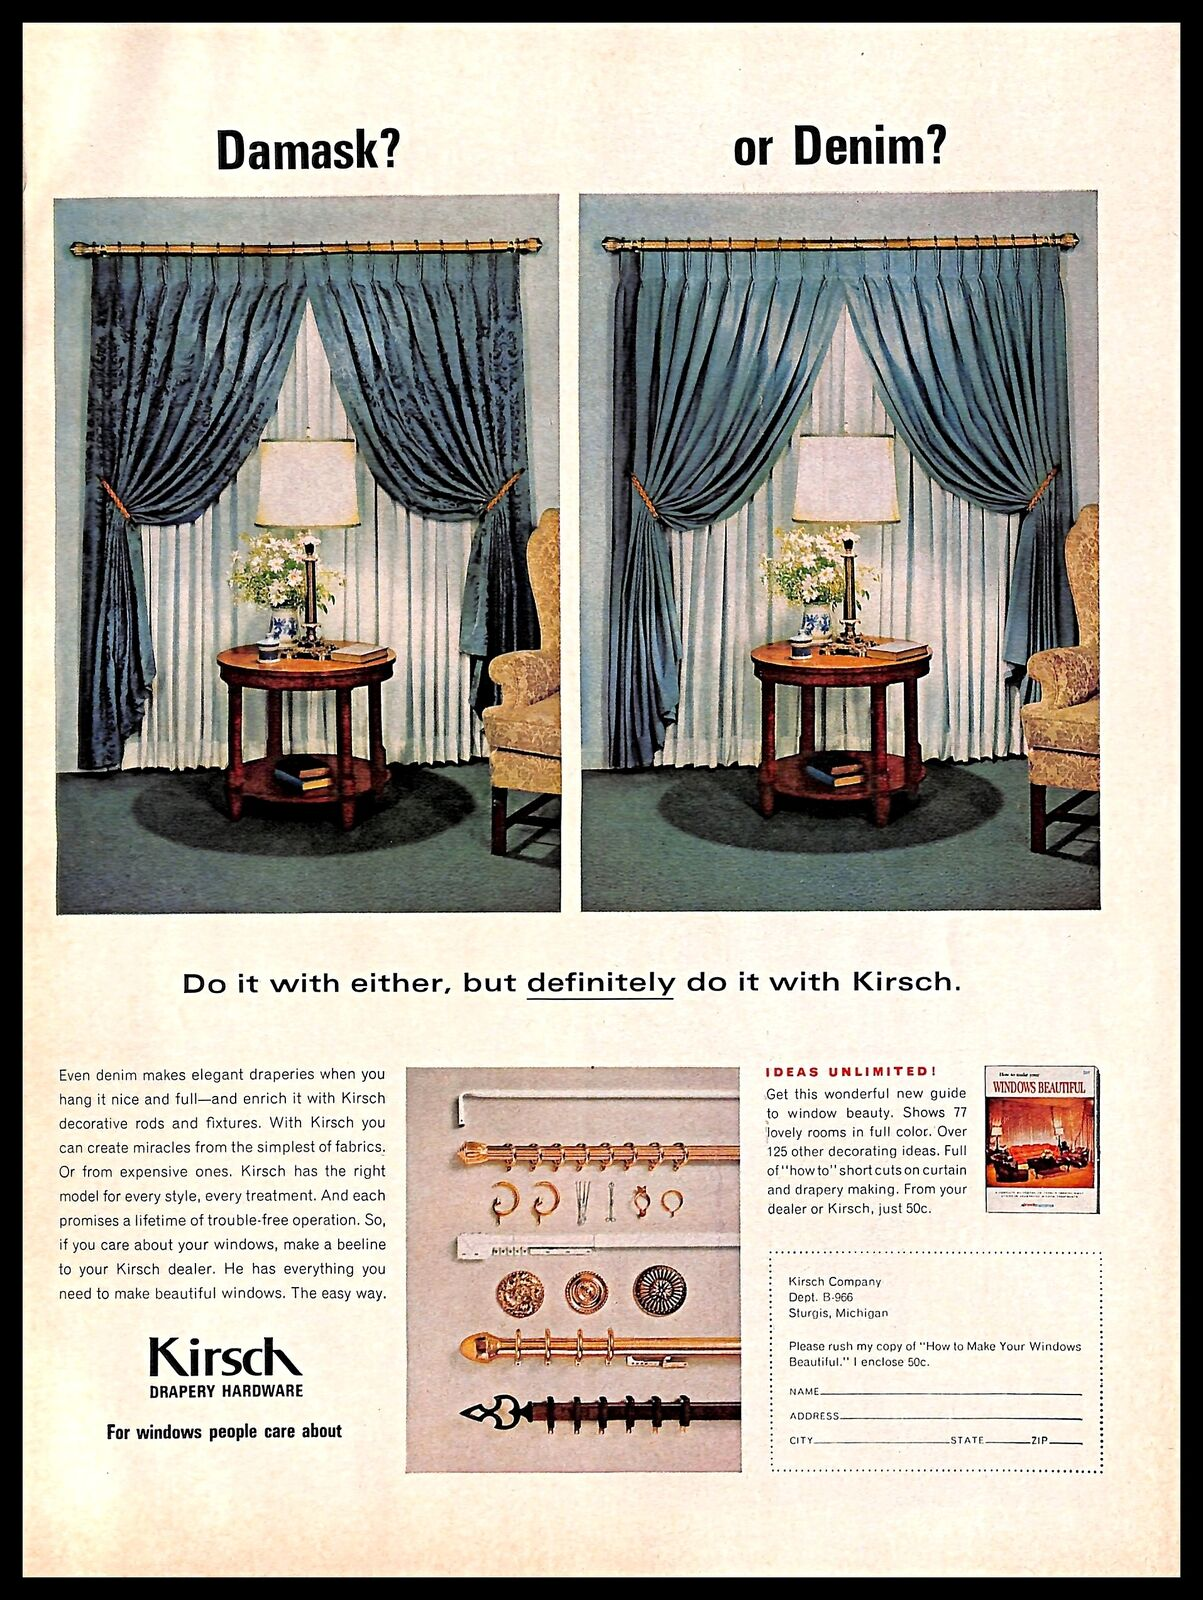 Details About 1966 Kirsch Drapery Hardware Vintage Print Ad Curtains Windows Home Decor 1960s